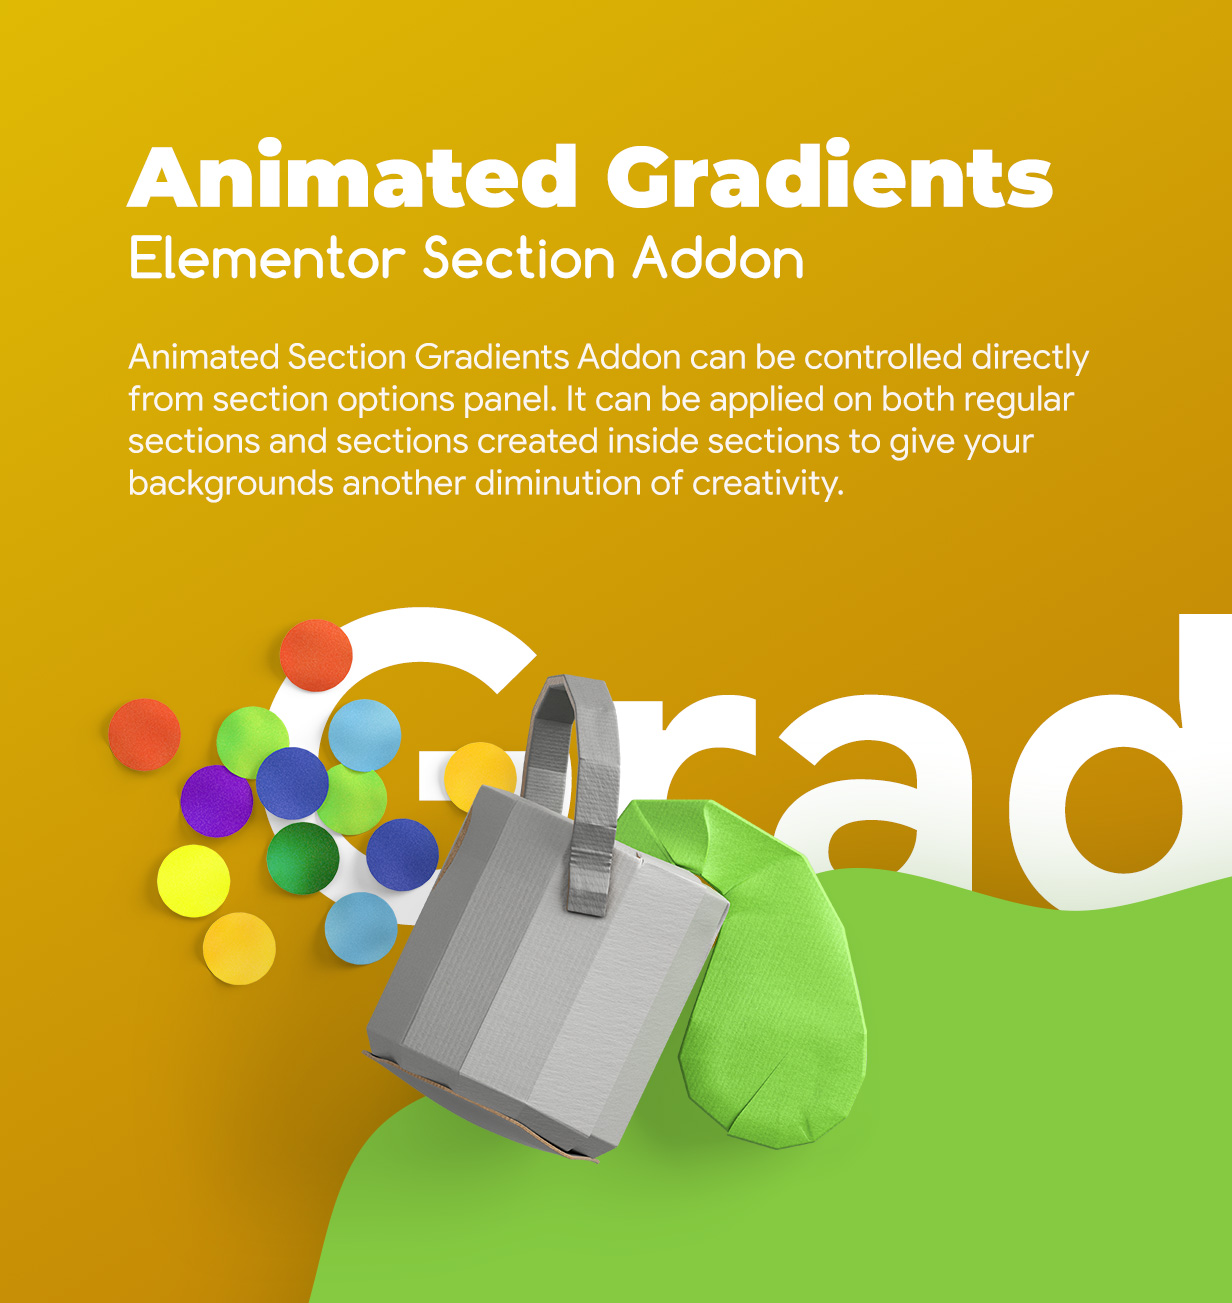 Premium Section Add-ons for Elementor - 3